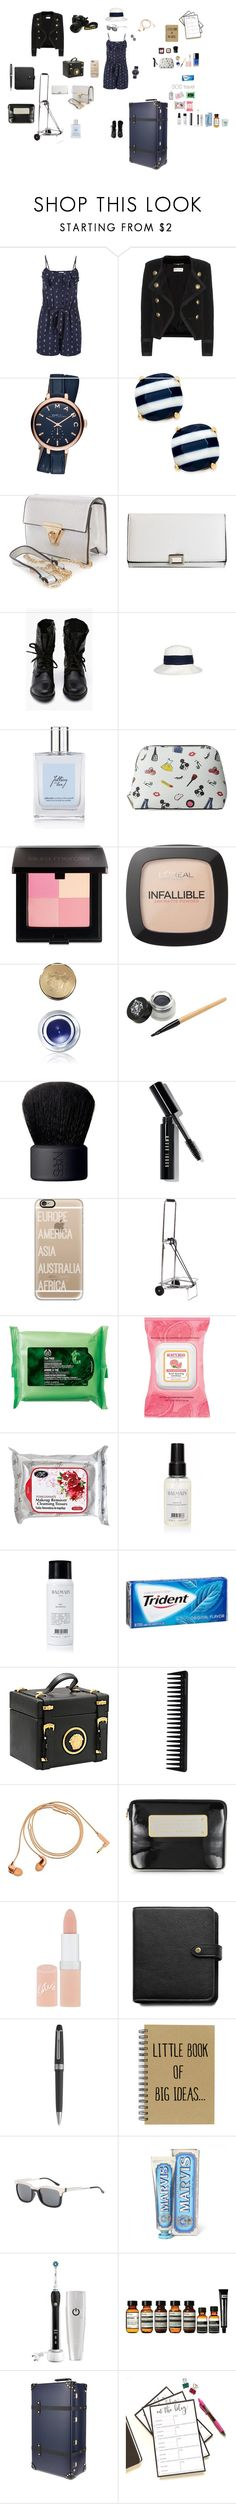 """travel essentials"" by favos ❤ liked on Polyvore featuring maurices, Yves Saint Laurent, Marc Jacobs, Kate Spade, Rebecca Taylor, philosophy, Alice + Olivia, Laura Mercier, L'Oréal Paris and Bobbi Brown Cosmetics"